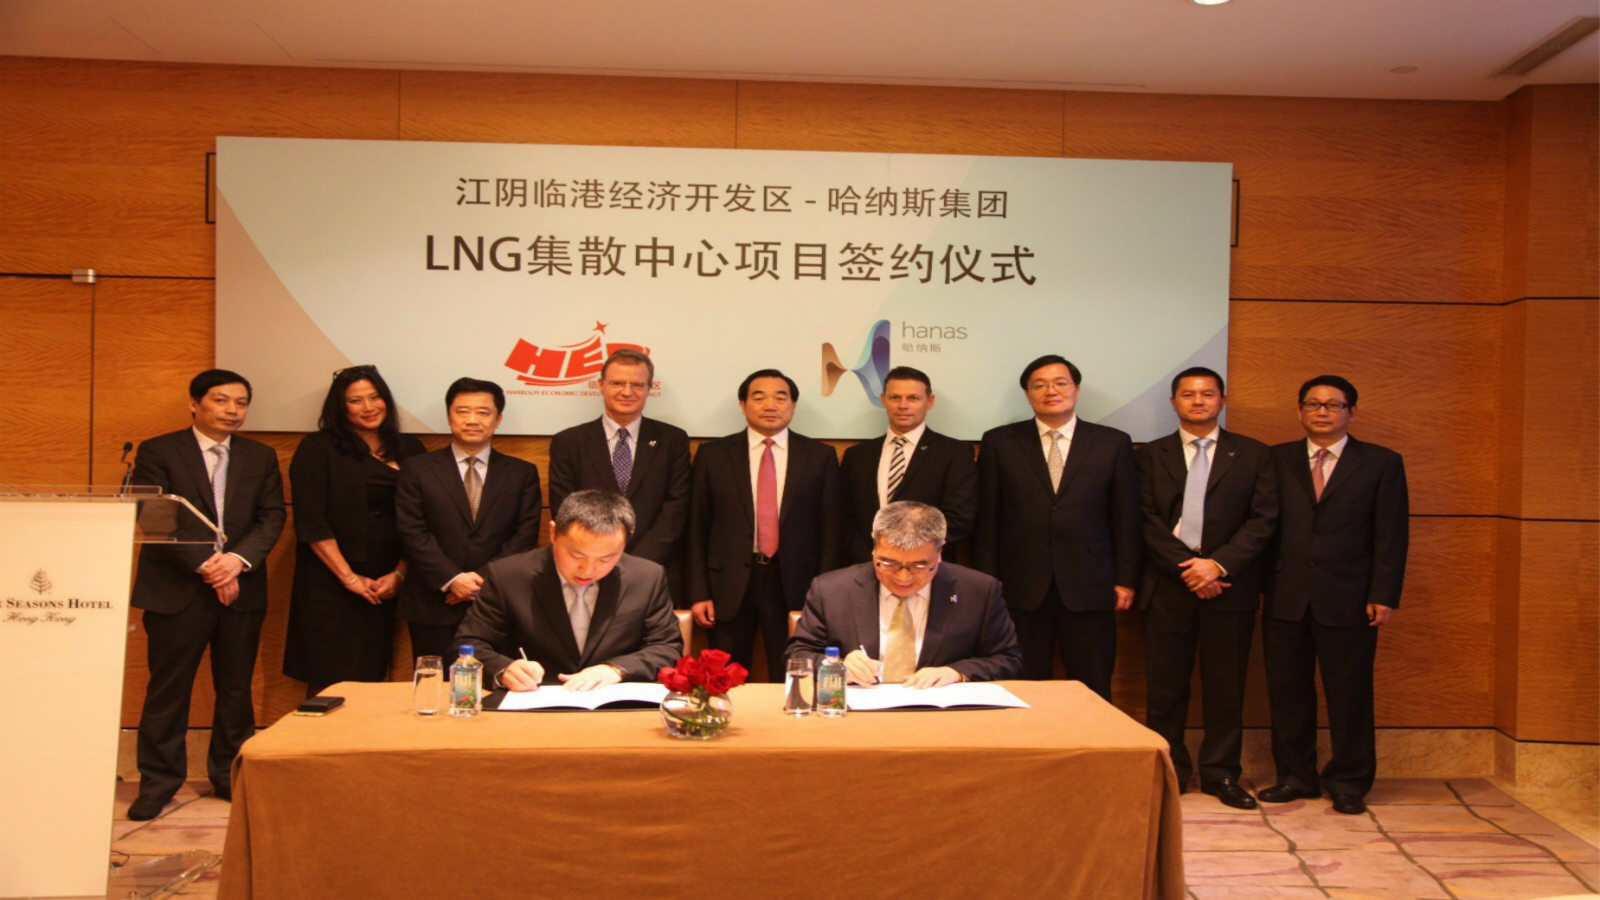 Signing Ceremony of LNG Entrepot Project of Hanas Group and Jiangyin Harbour Economic Development District